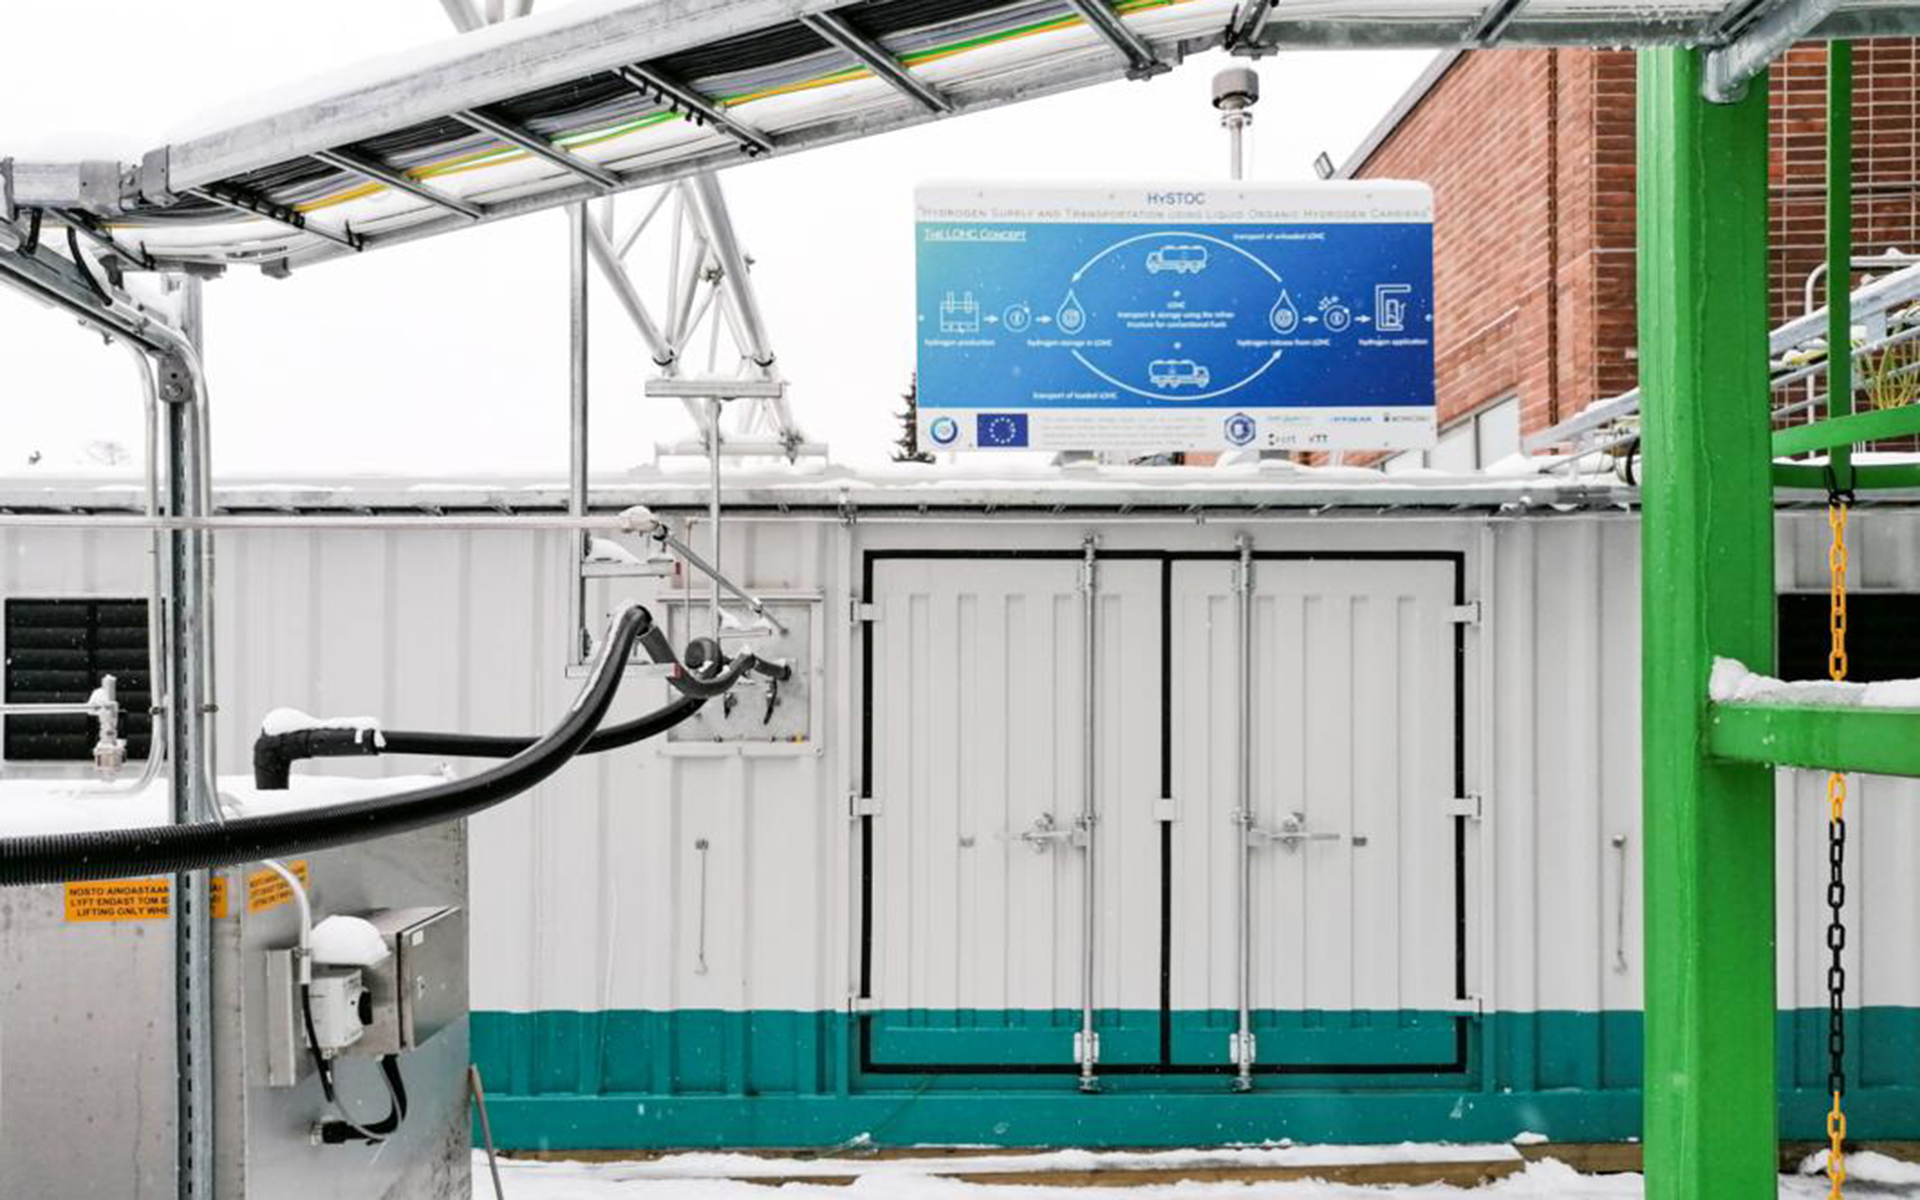 (2) ReleaseBox of Hydrogenious LOHC Technologies has started operation without any problems at local double-digit sub-zero temperatures within the HySTOC project in Finland, © Hydrogenious LOHC Technologies